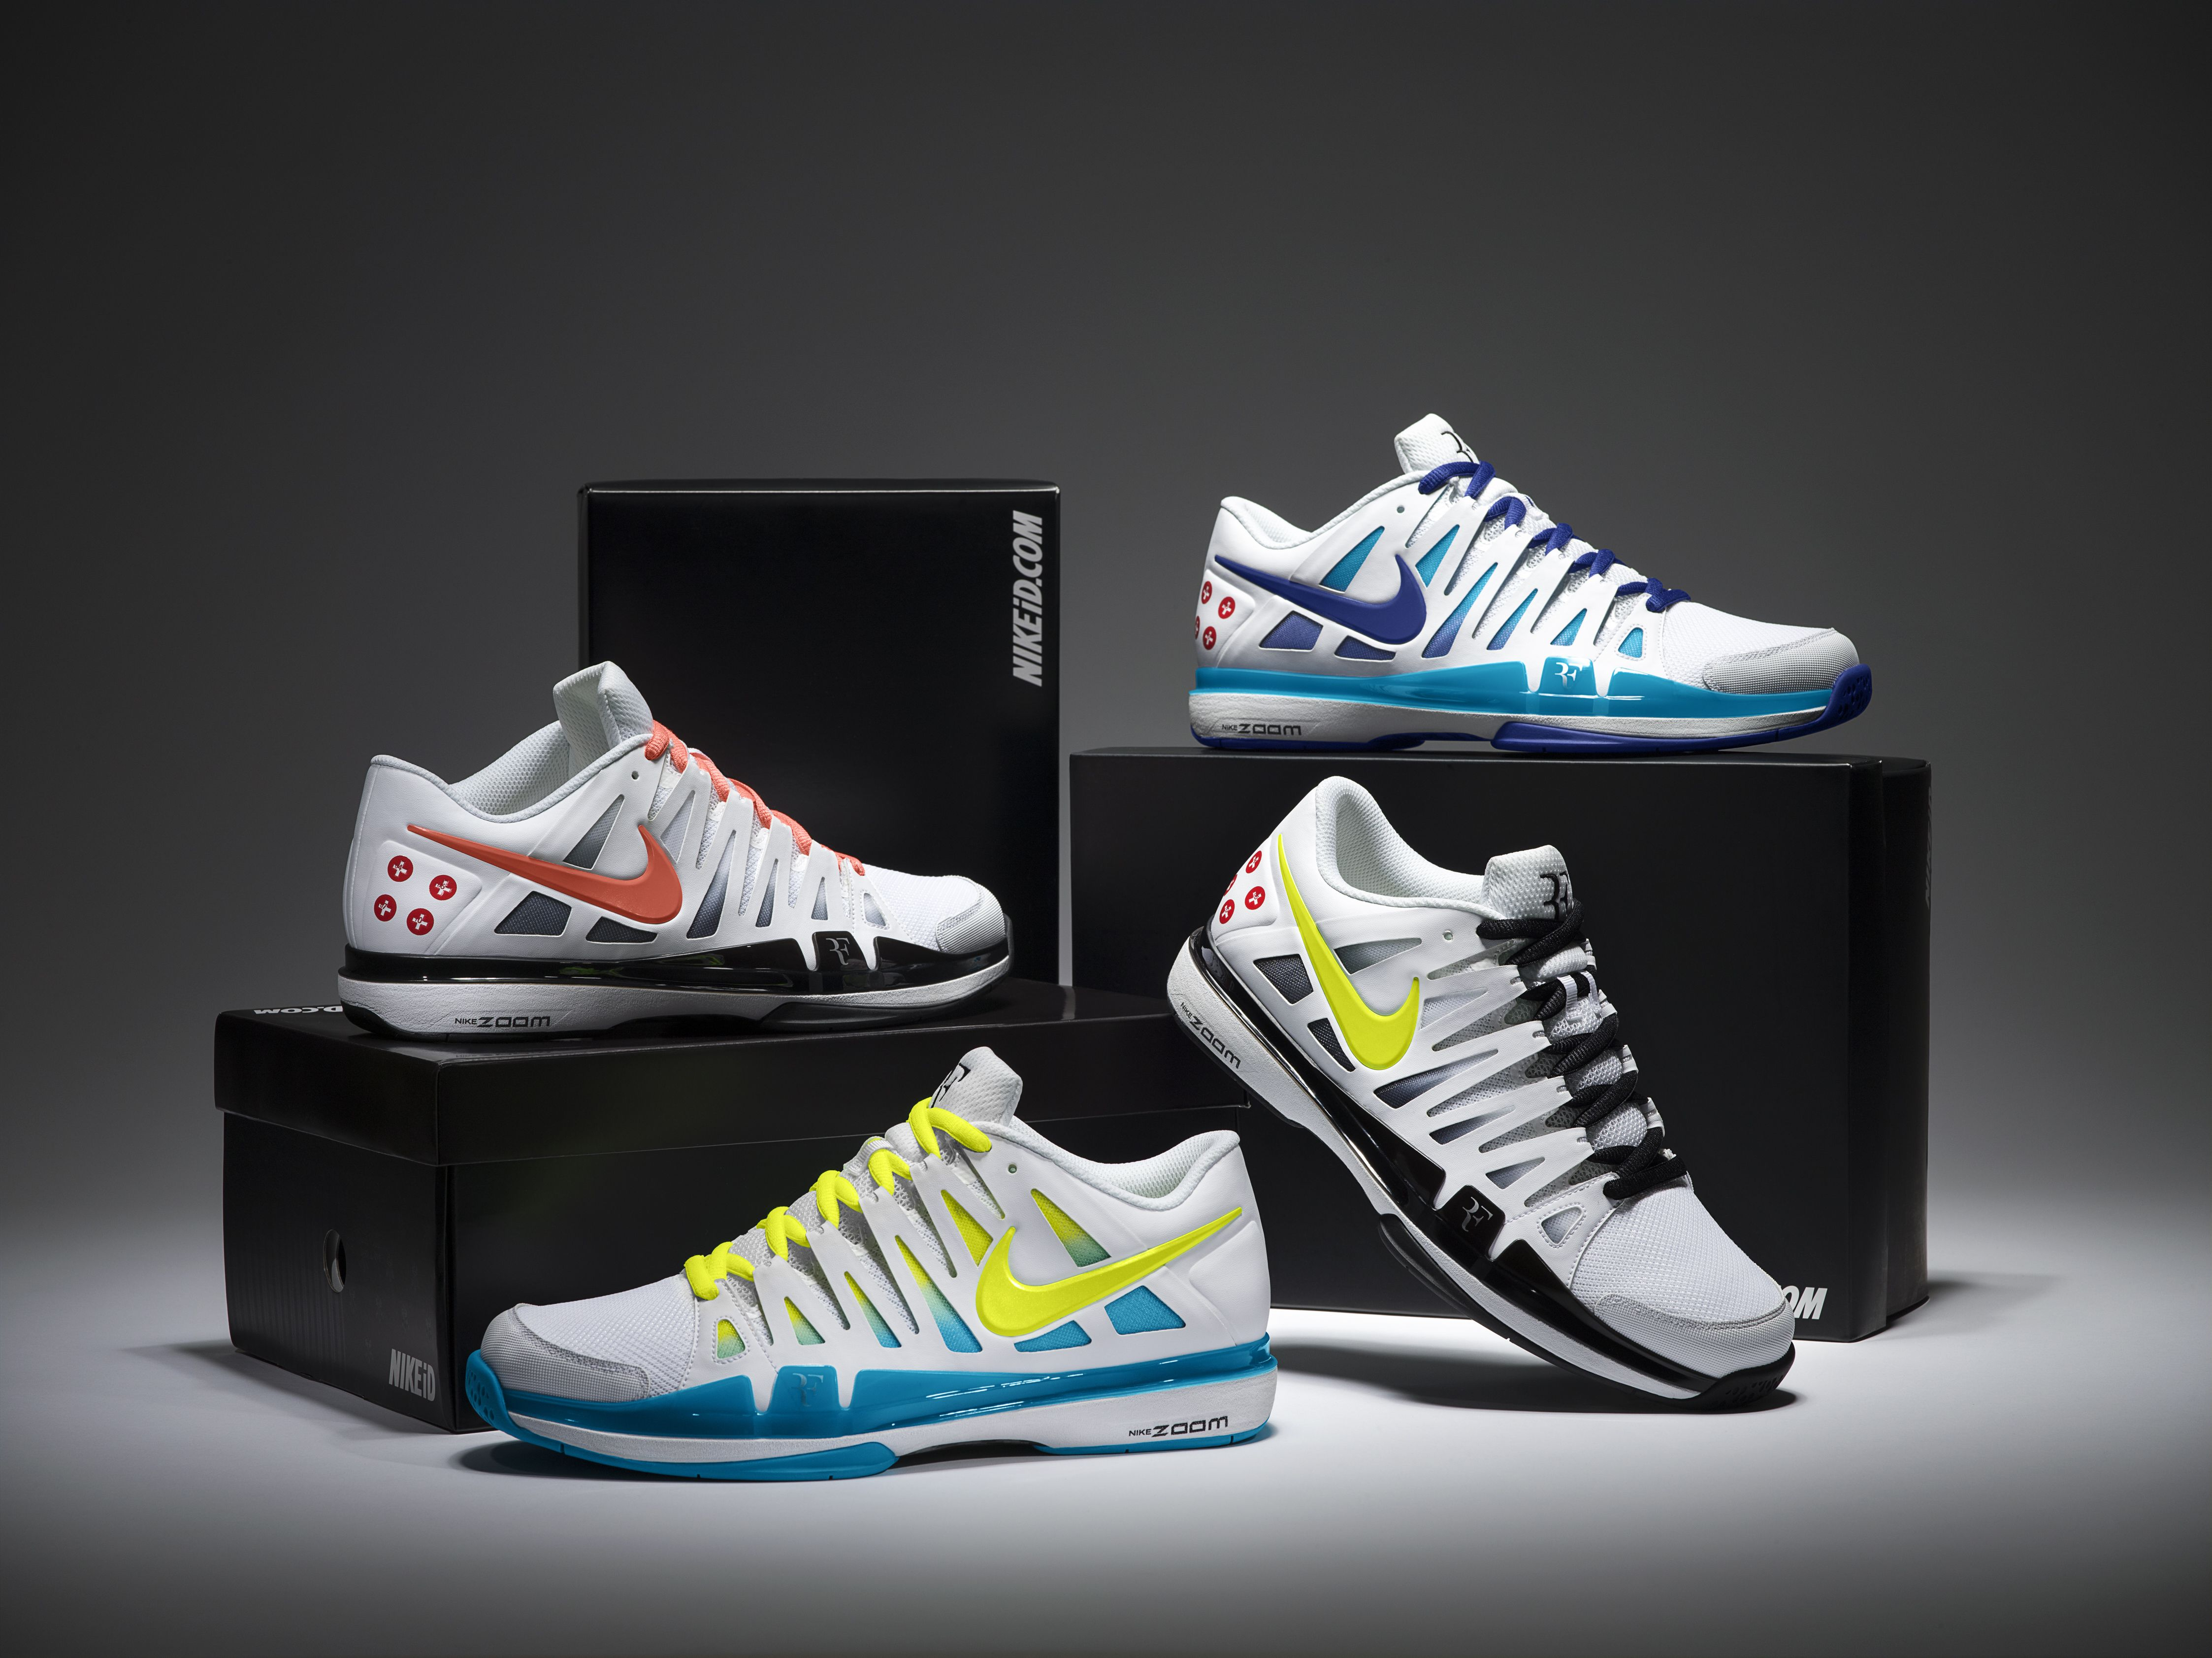 Nike Zoom Vapor 9 Tour. Roger Federer invites fans to choose Grand Slam  shoes -